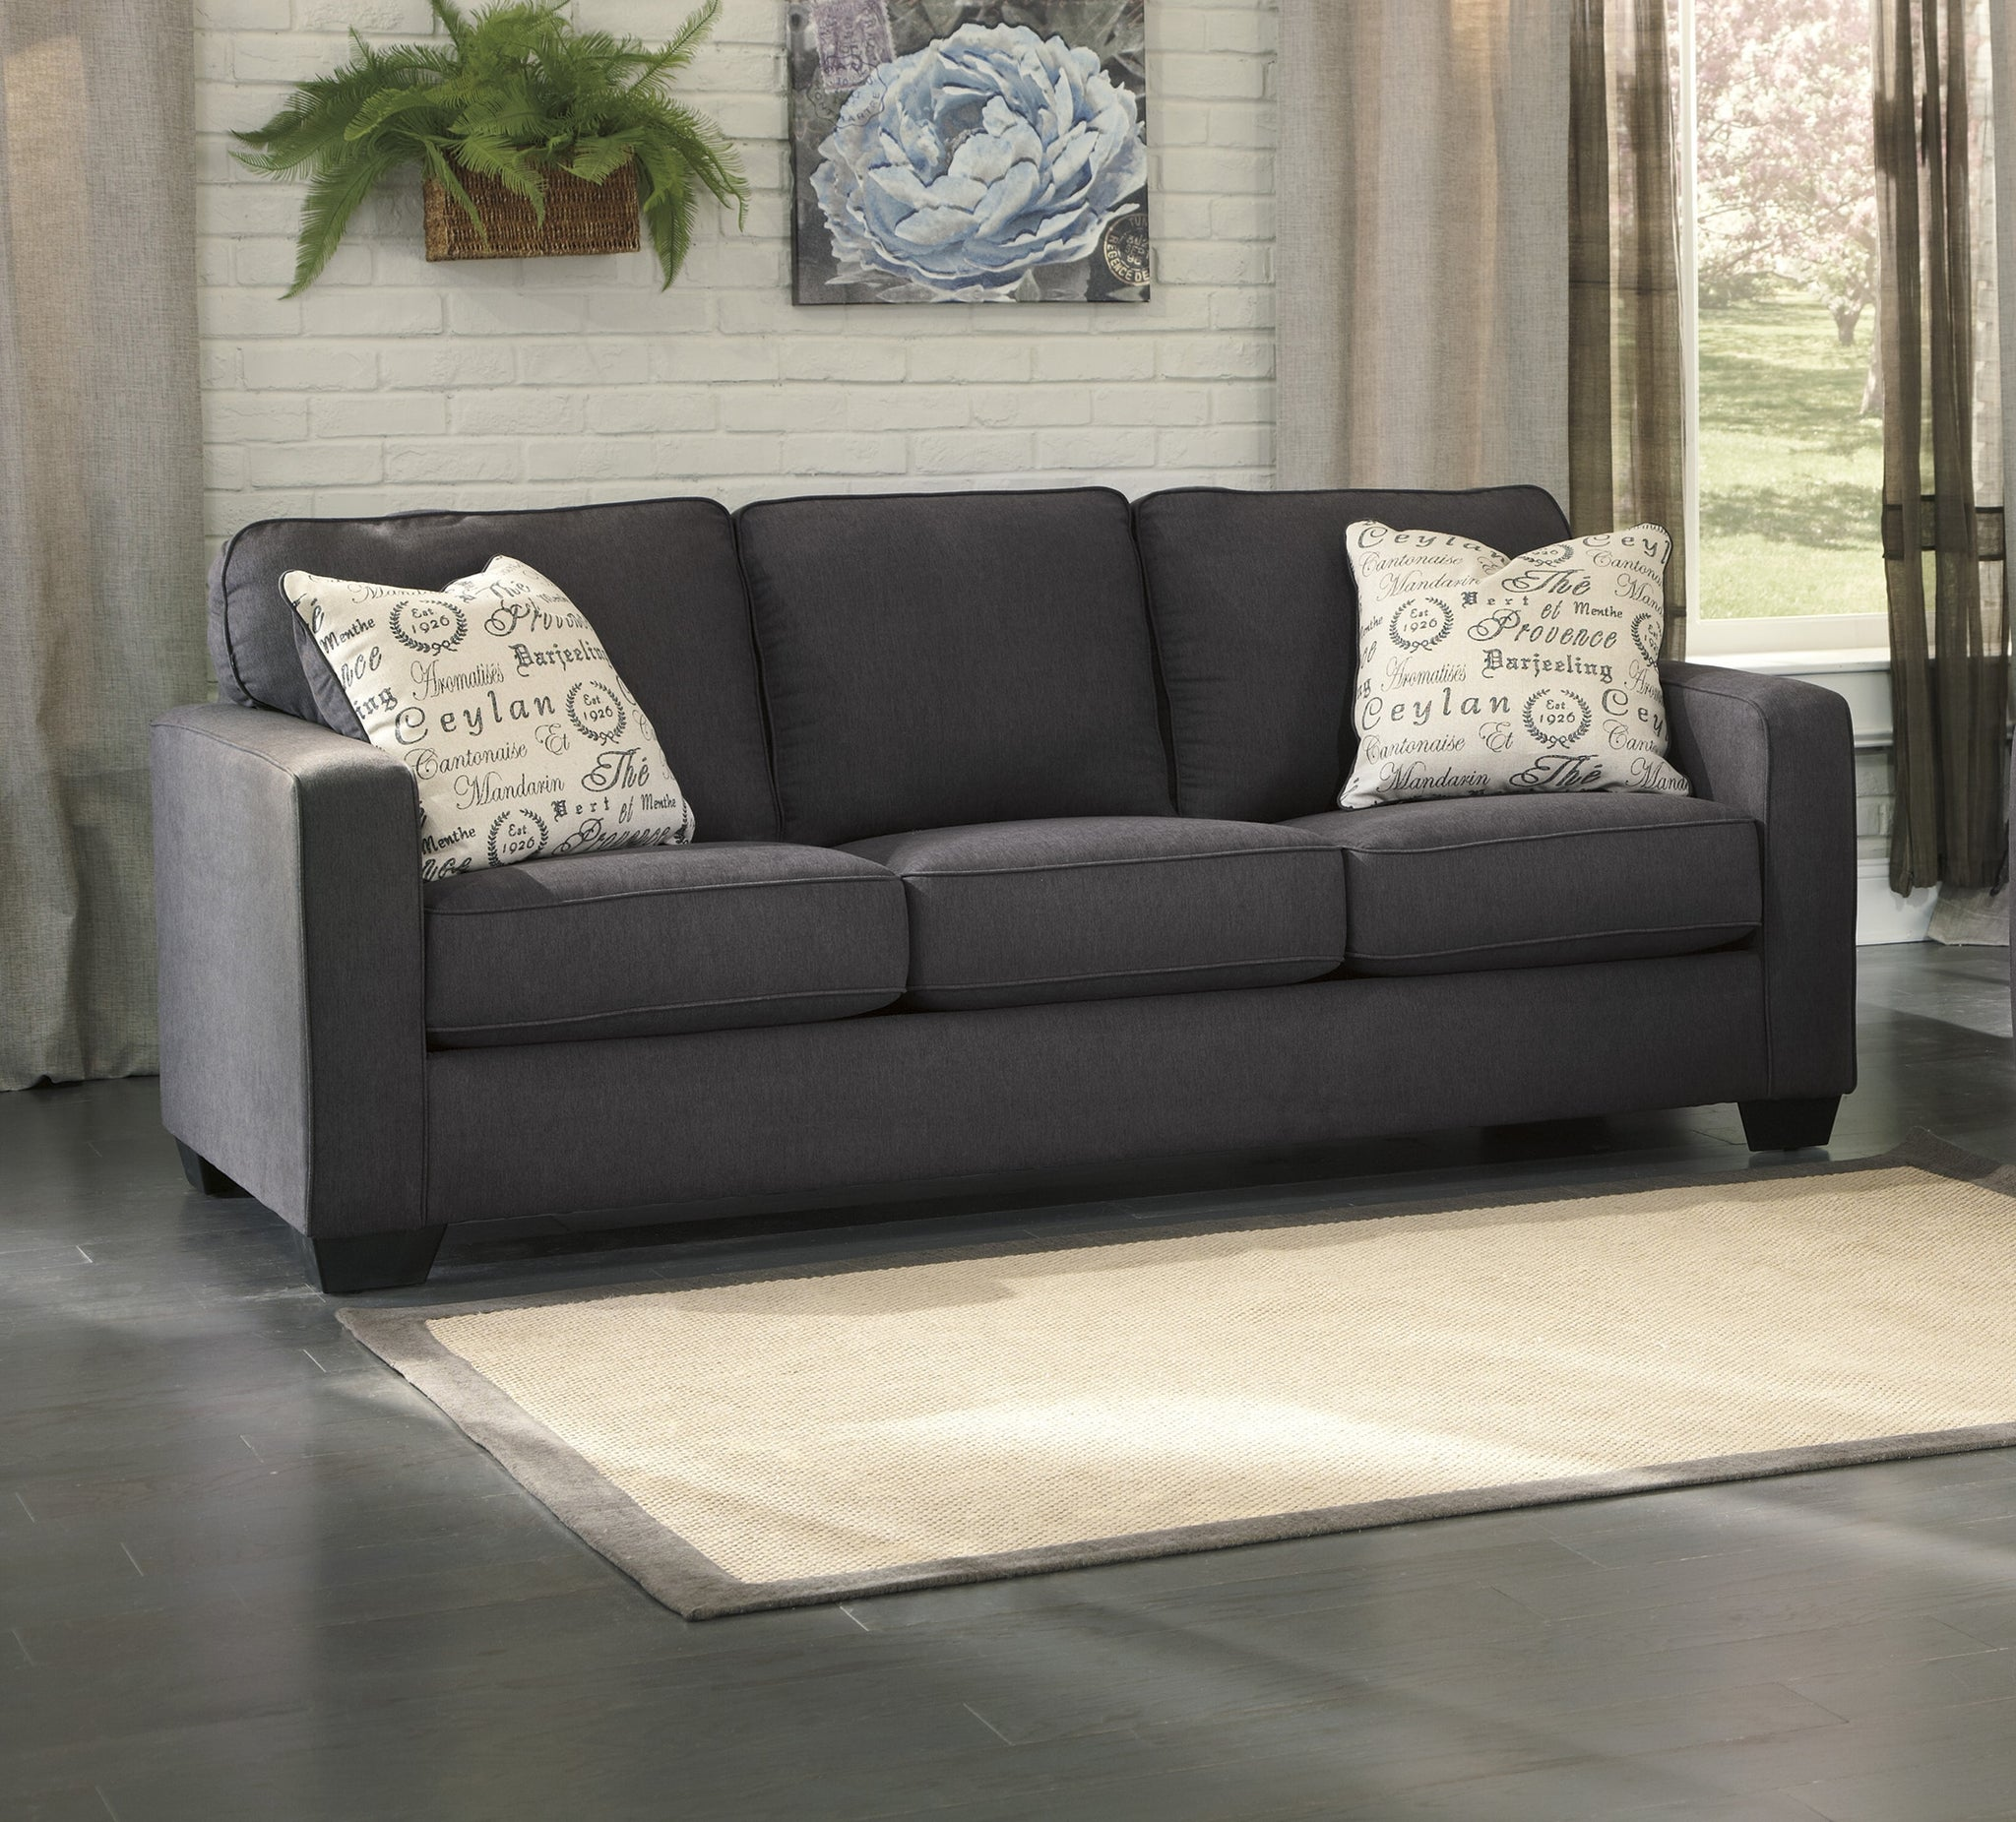 Astonishing Alenya Charcoal Queen Sofa Sleeper Flatfair Ncnpc Chair Design For Home Ncnpcorg